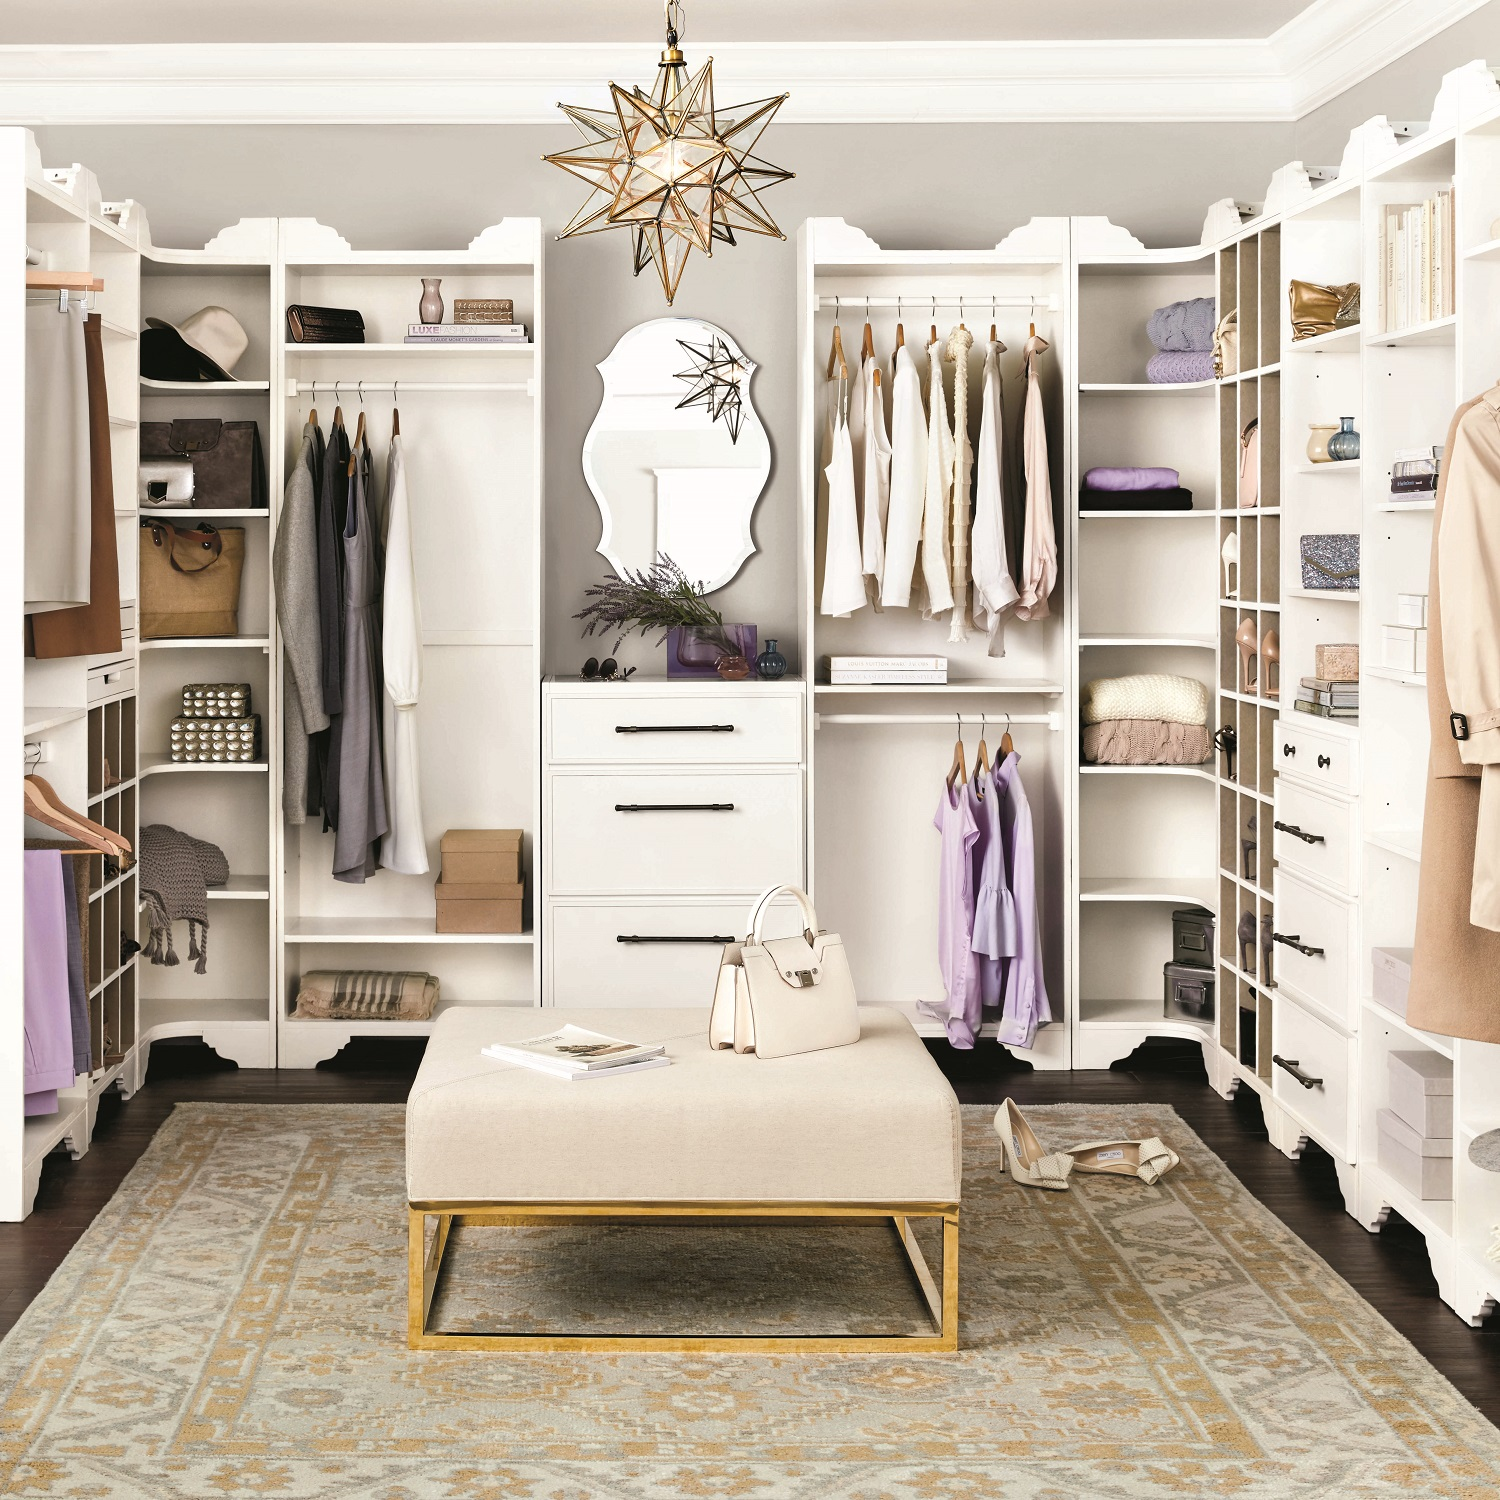 Looking for an organized, new closet (don't forget the chandelier!) in 2019? Shown: Ballard Design's Sarah affordable storage system offers the look of custom luxury. Photo: Ballard Designs